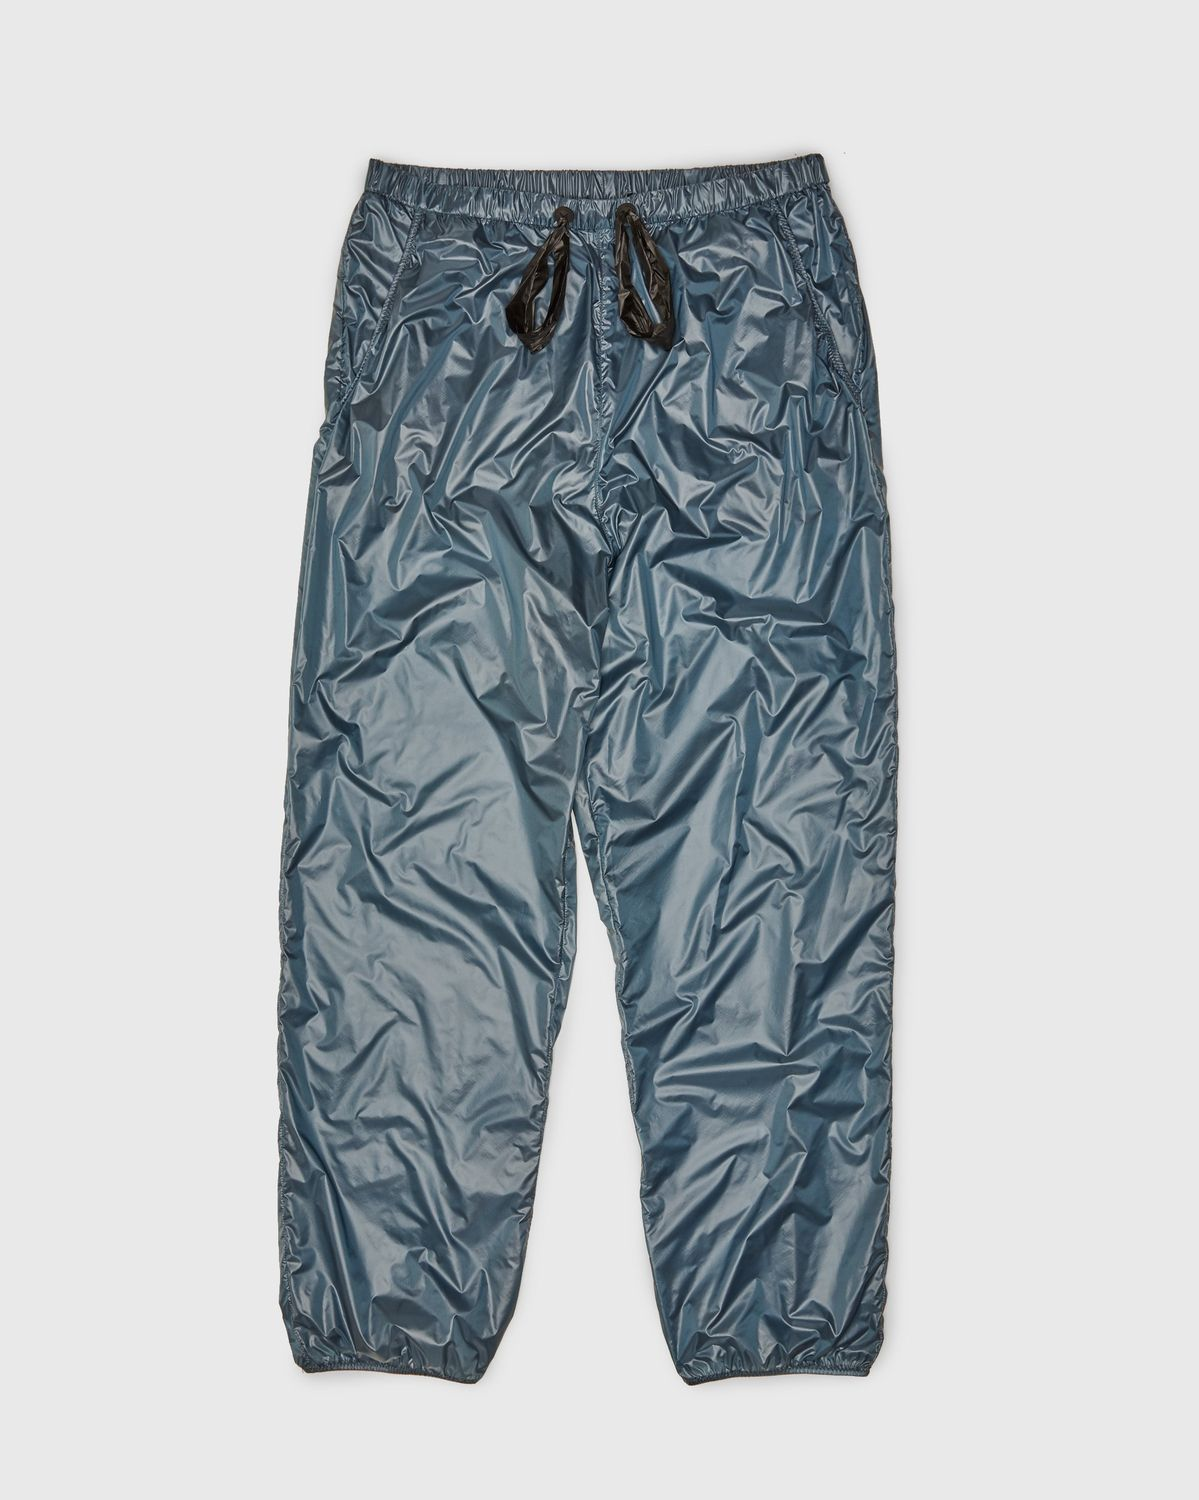 5 Moncler Craig Green — Trousers Grey/Blue - Image 1